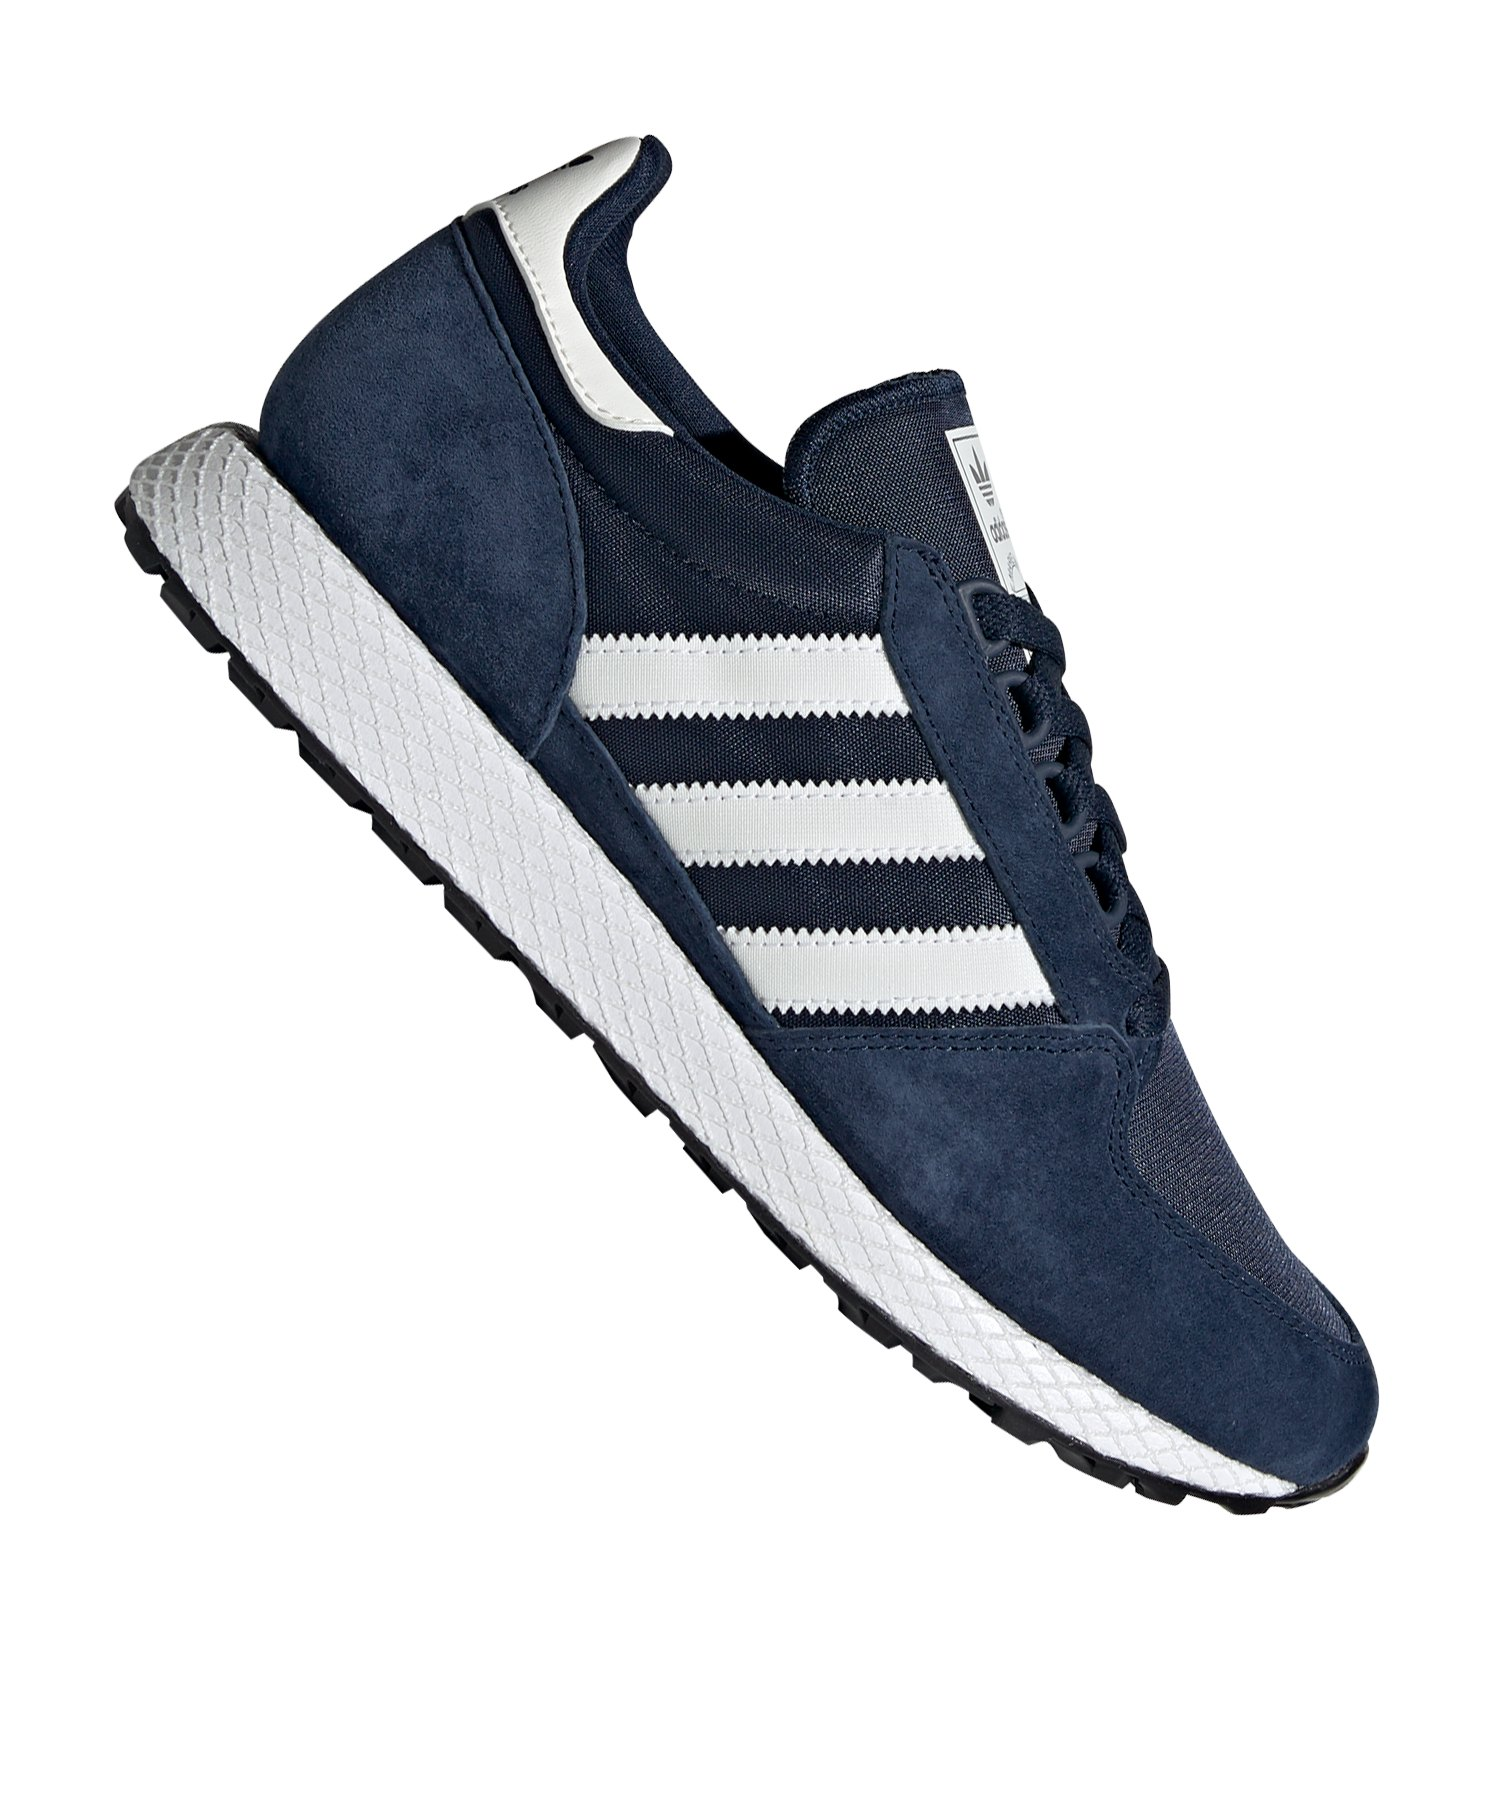 adidas Originals Forest Grove Sneaker Blau Weiss